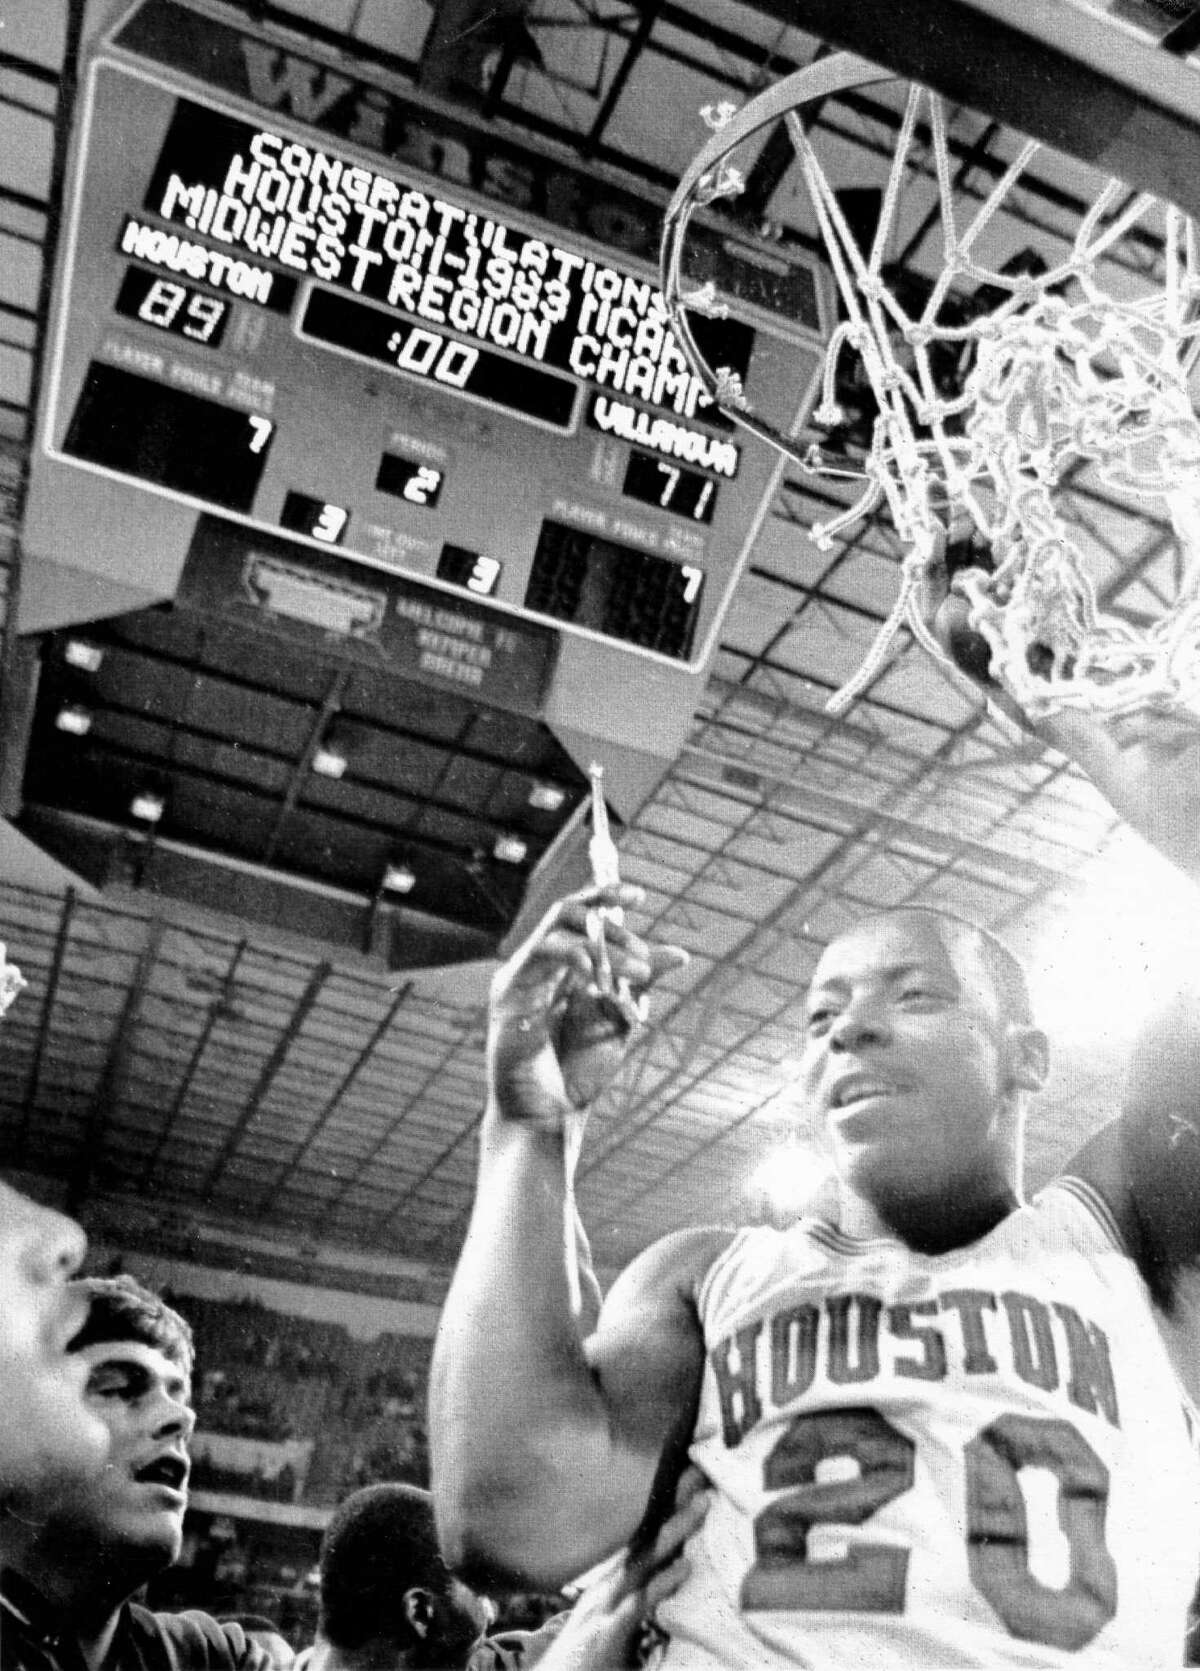 03/27/1983 - Houston Cougars guard Alvin Franklin (20) snips a souvenir piece of the net after UH defeated Villanova in the Midwest Regional Final of the NCAA Tournament at Kemper Arena in Kansas City, Missouri.